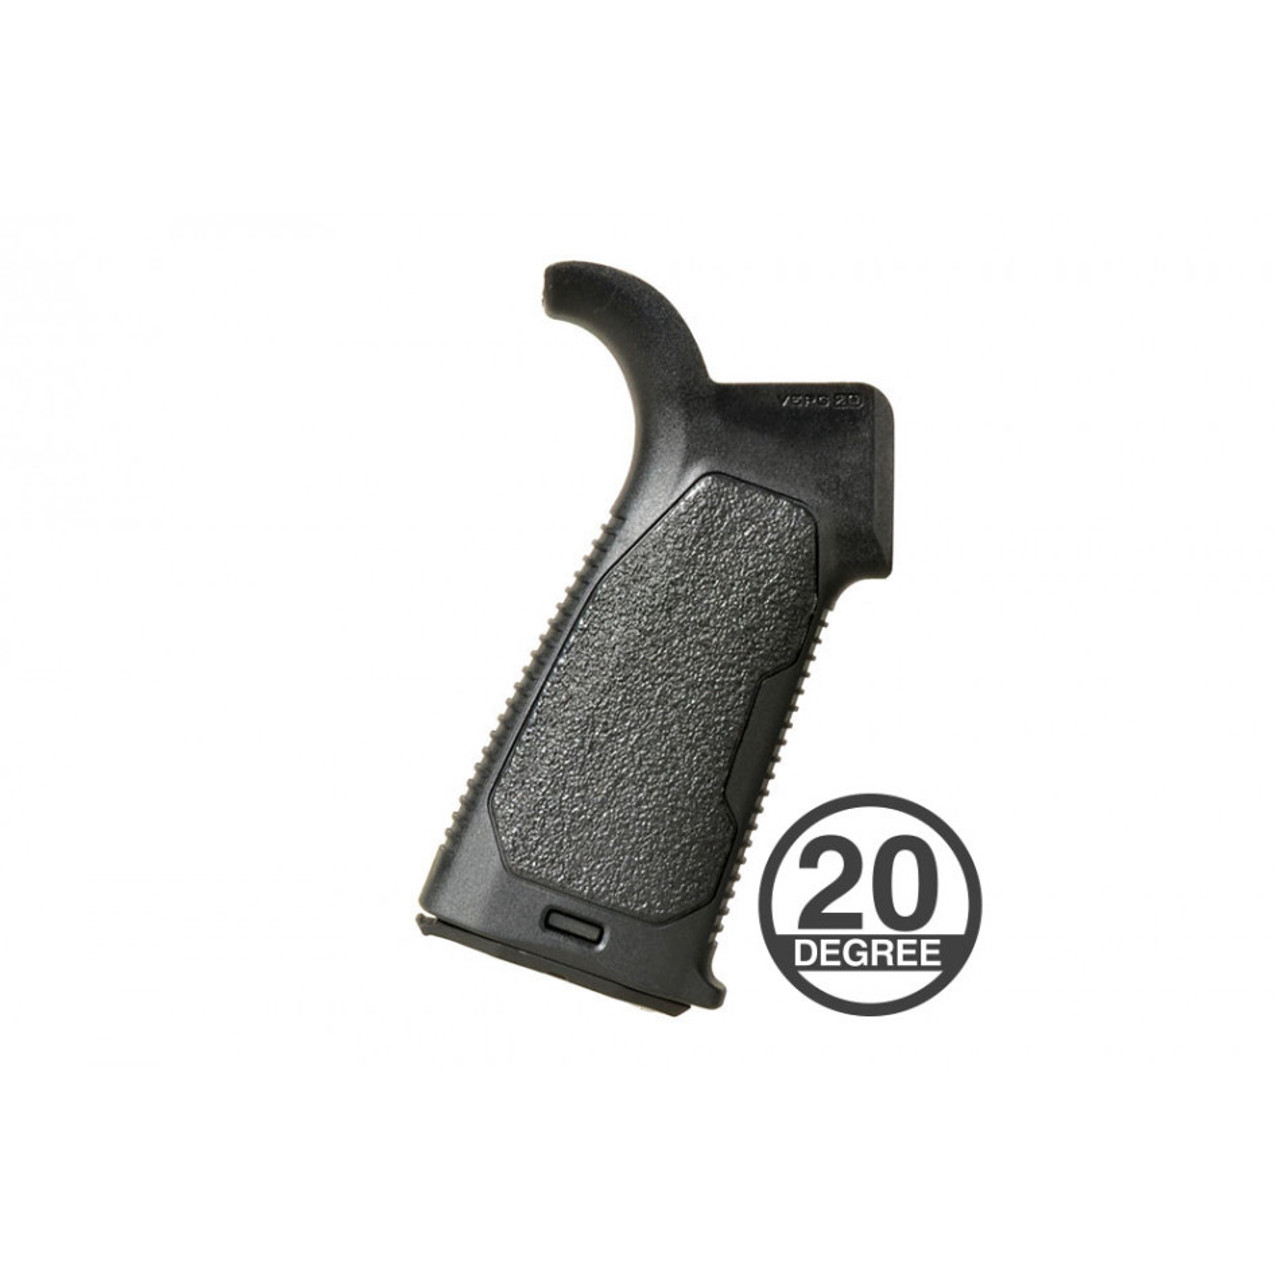 Strike Industries Viper Enhanced Pistol Grip - 20 degree